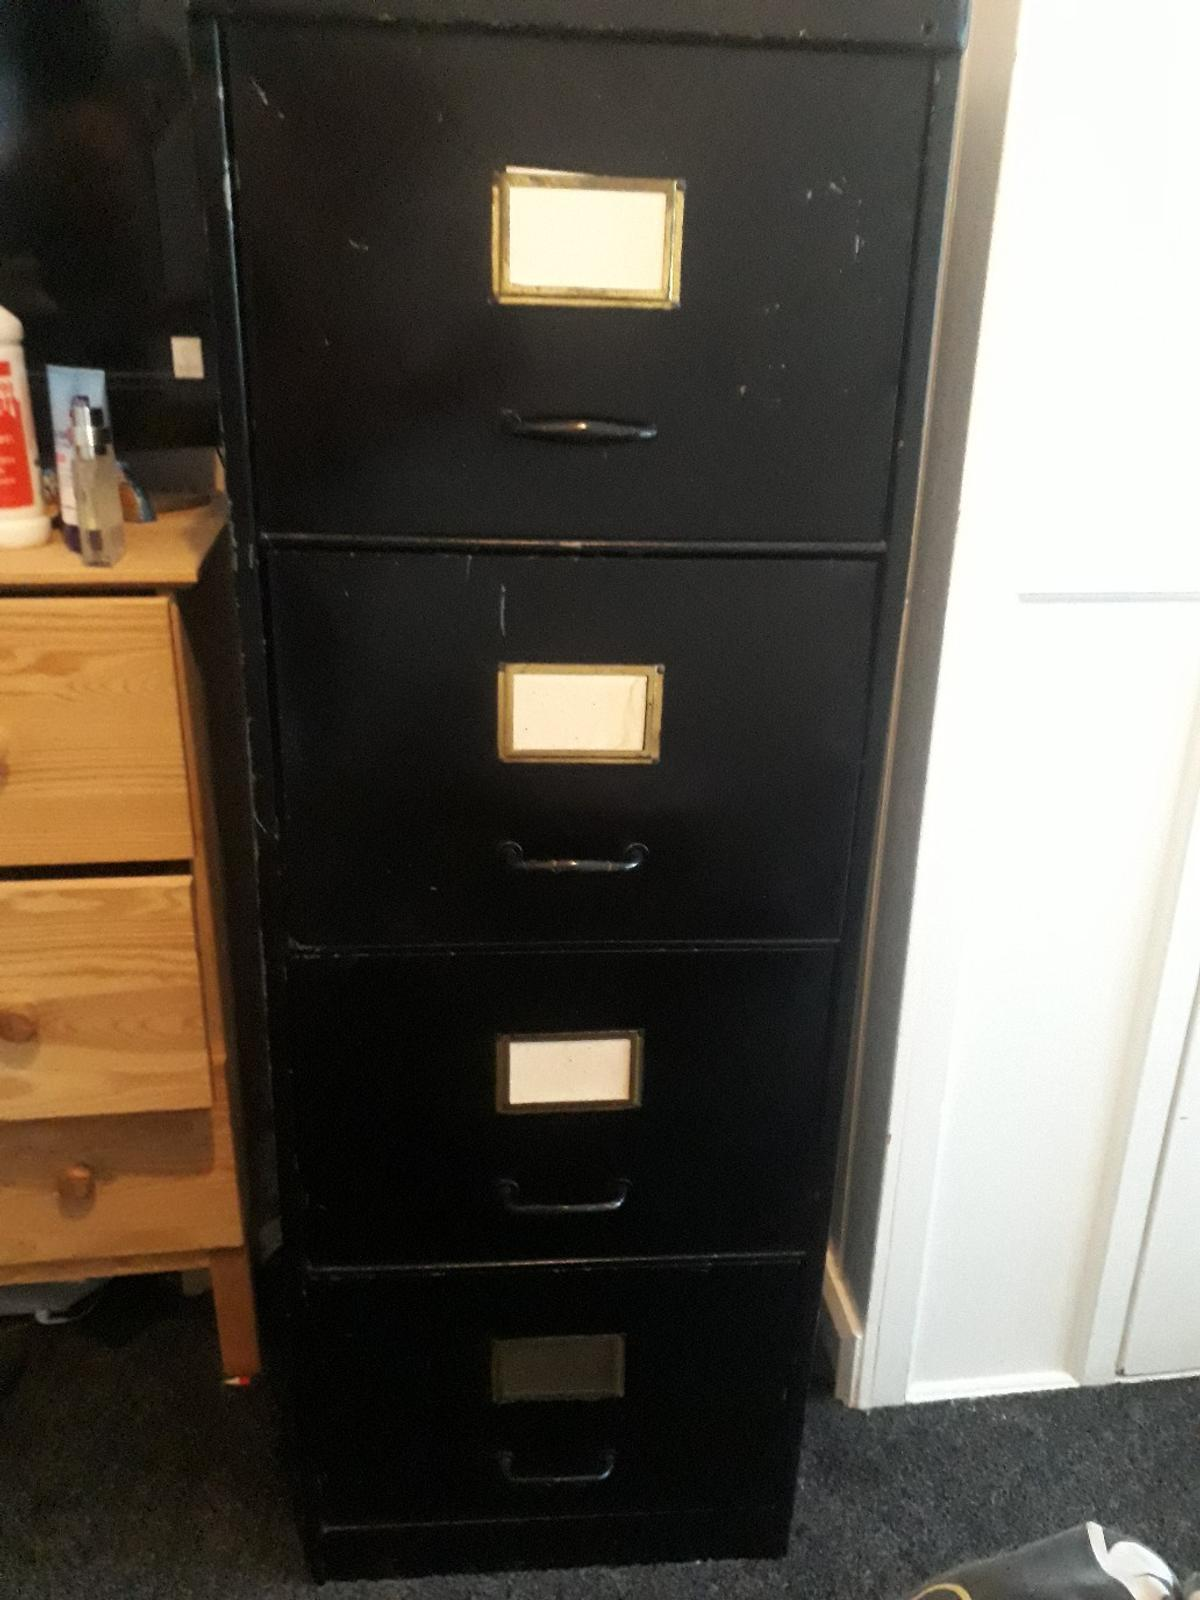 old metal filing cabinet. has signs of rust and one draw opens slowly, but has a lovely vintage look about it. needs an estate car or van to collect.